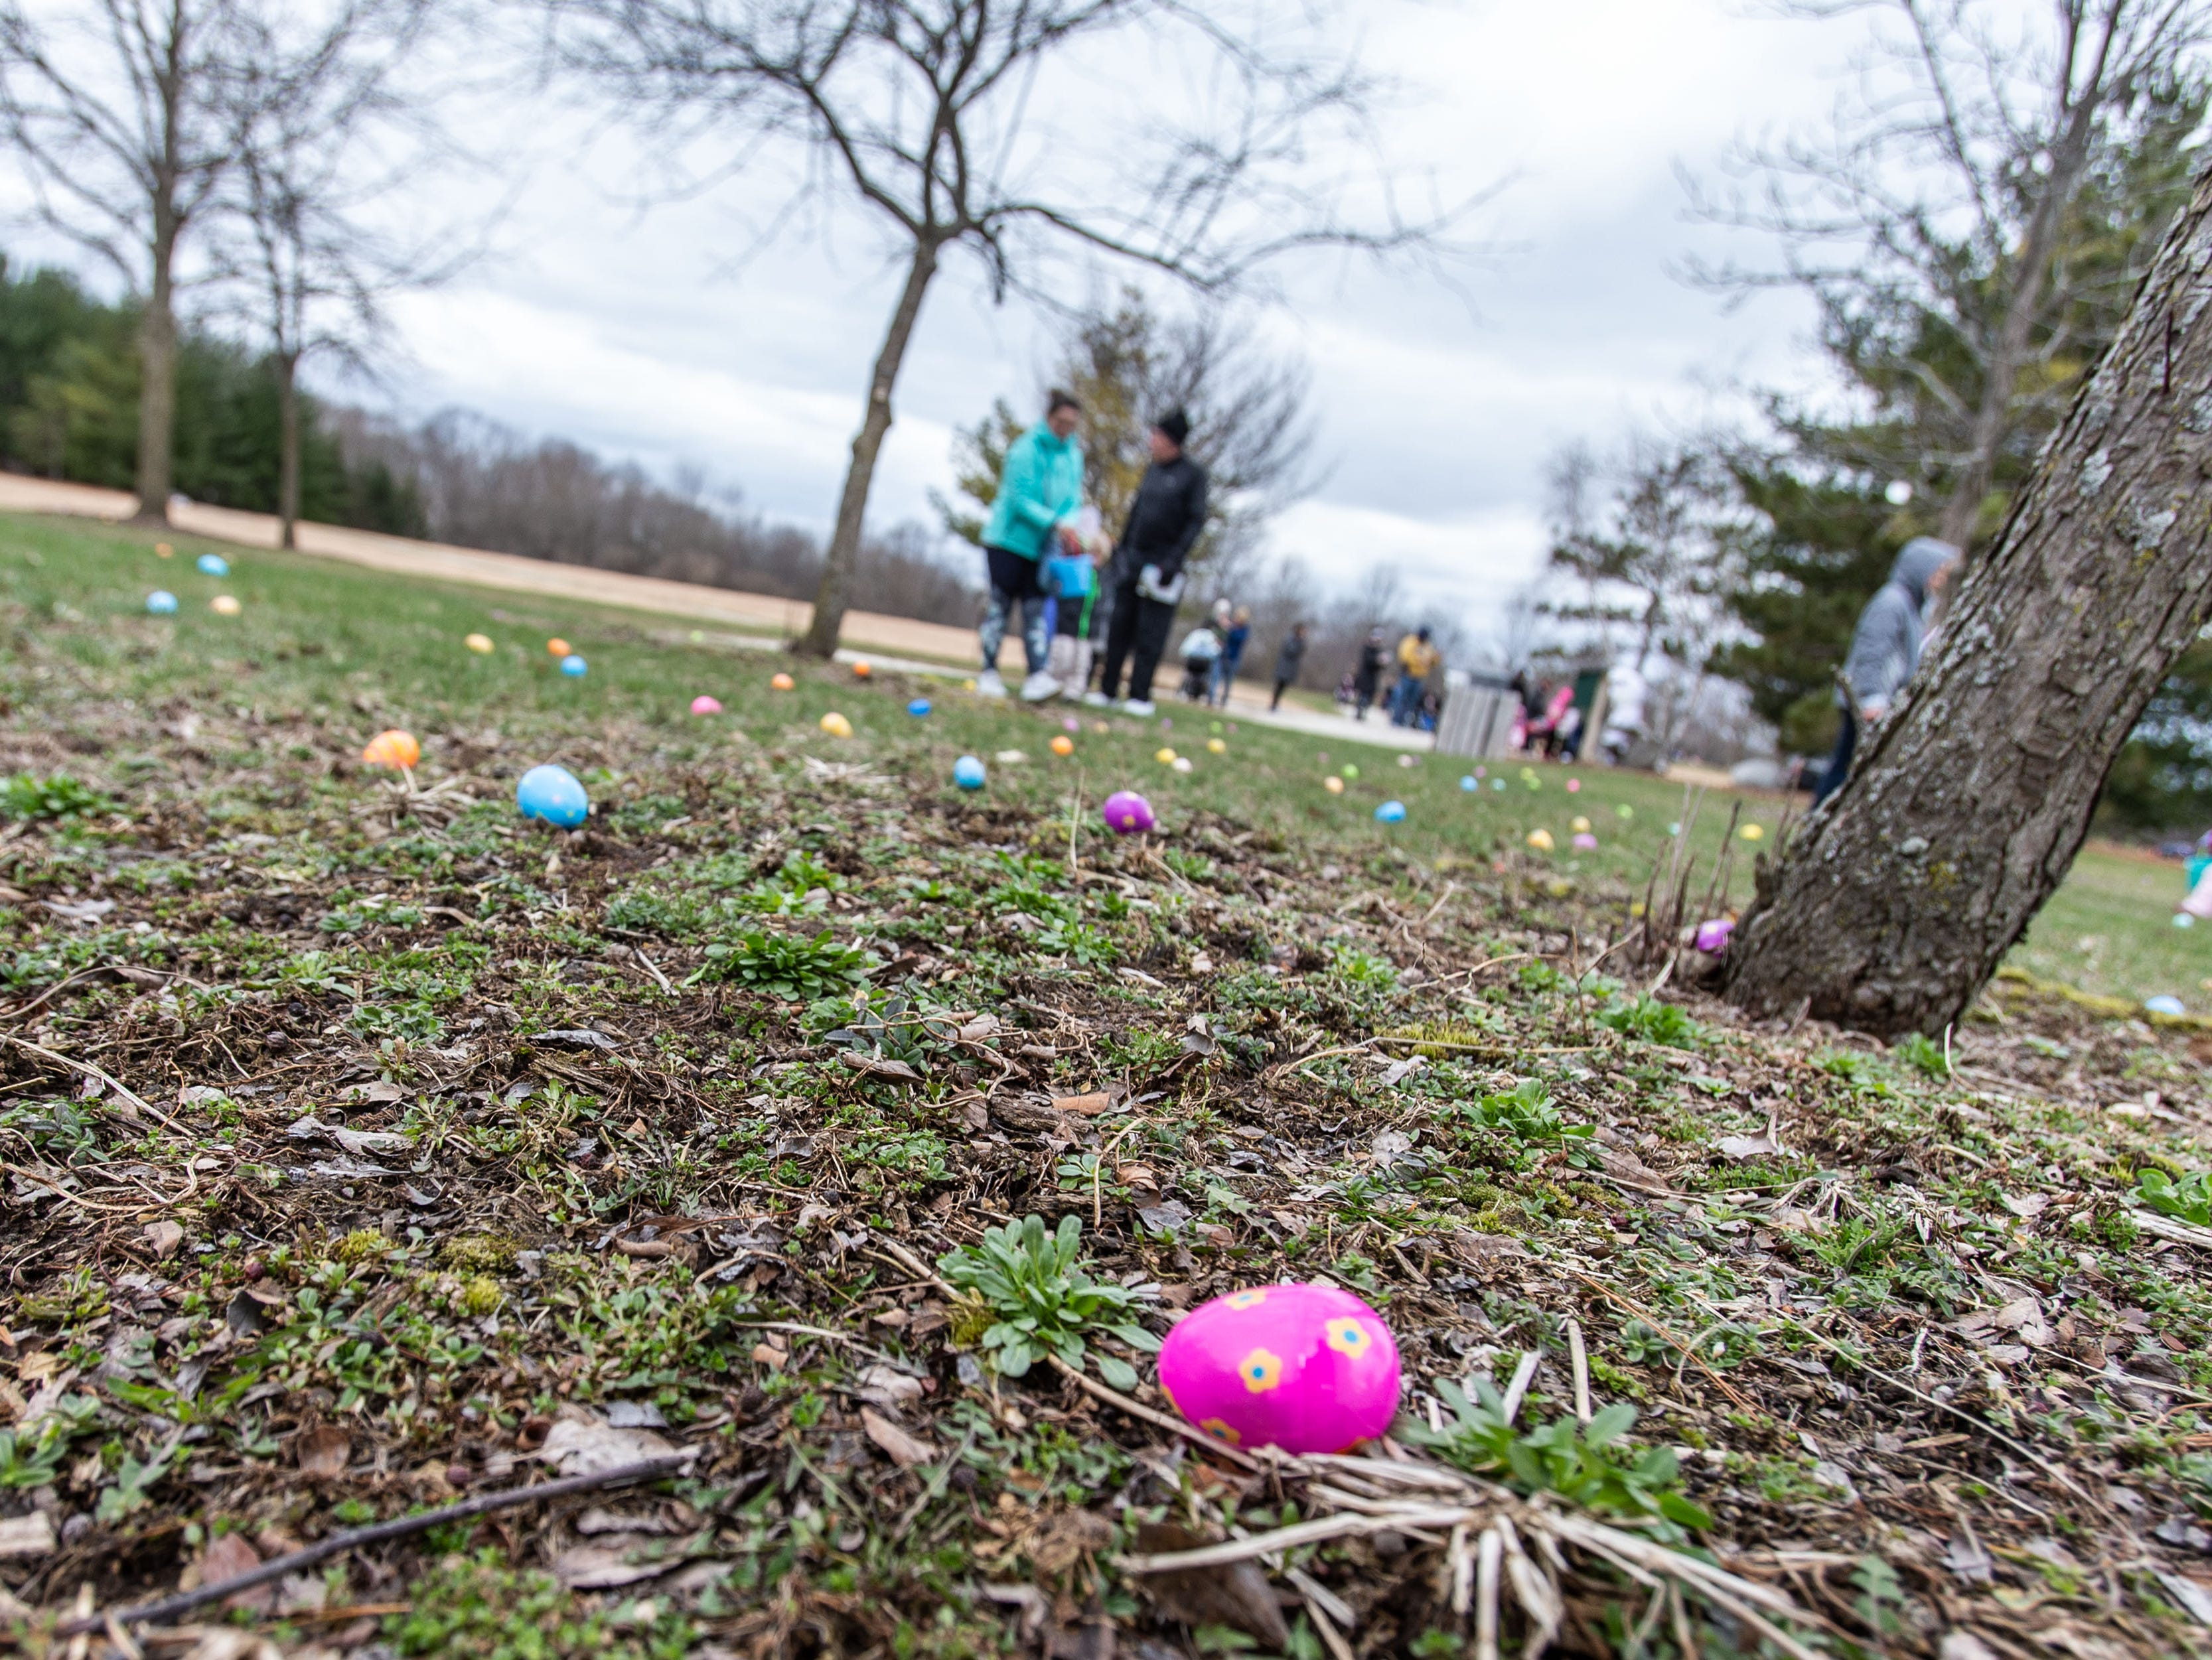 Youngsters gather candy filled eggs during the annual Easter Extravaganza egg hunt in Lisbon Community Park on Saturday, April 13, 2019. Sponsored by the Lisbon Park Department, the hunt features treats from area businesses and organizations, pictures with the Easter Bunny, local emergency response vehicles and more.